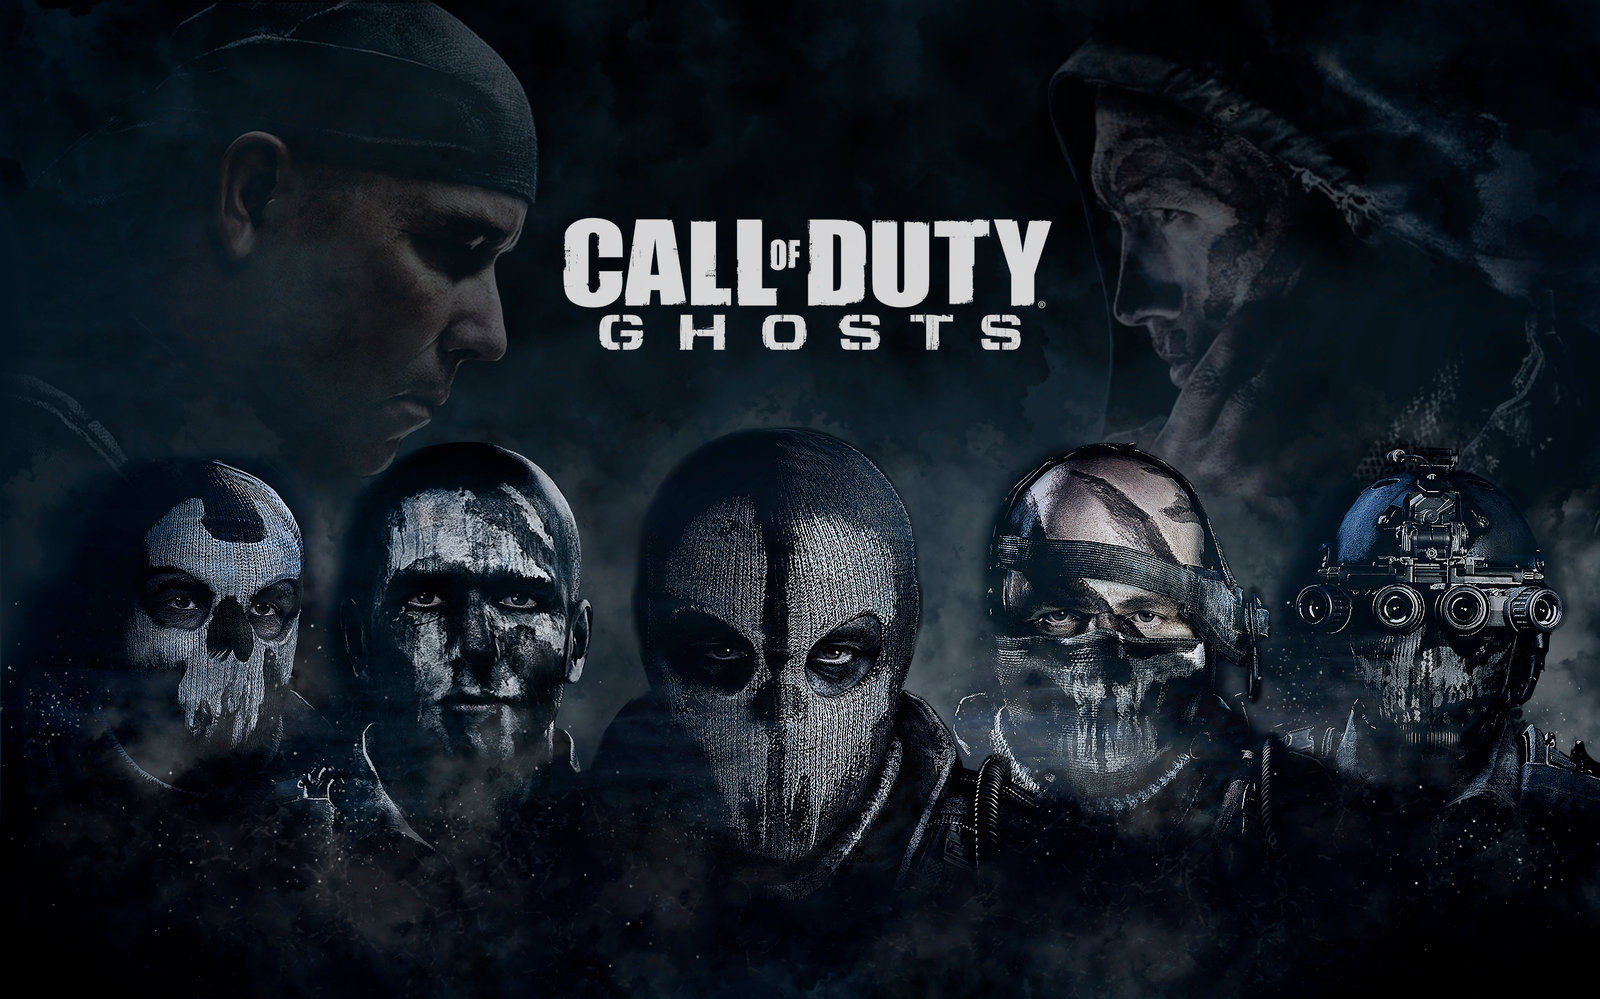 Call of duty ghosts wallpaper 40 wallpapers adorable wallpapers call of duty ghosts wallpaper 40 wallpapers sciox Images